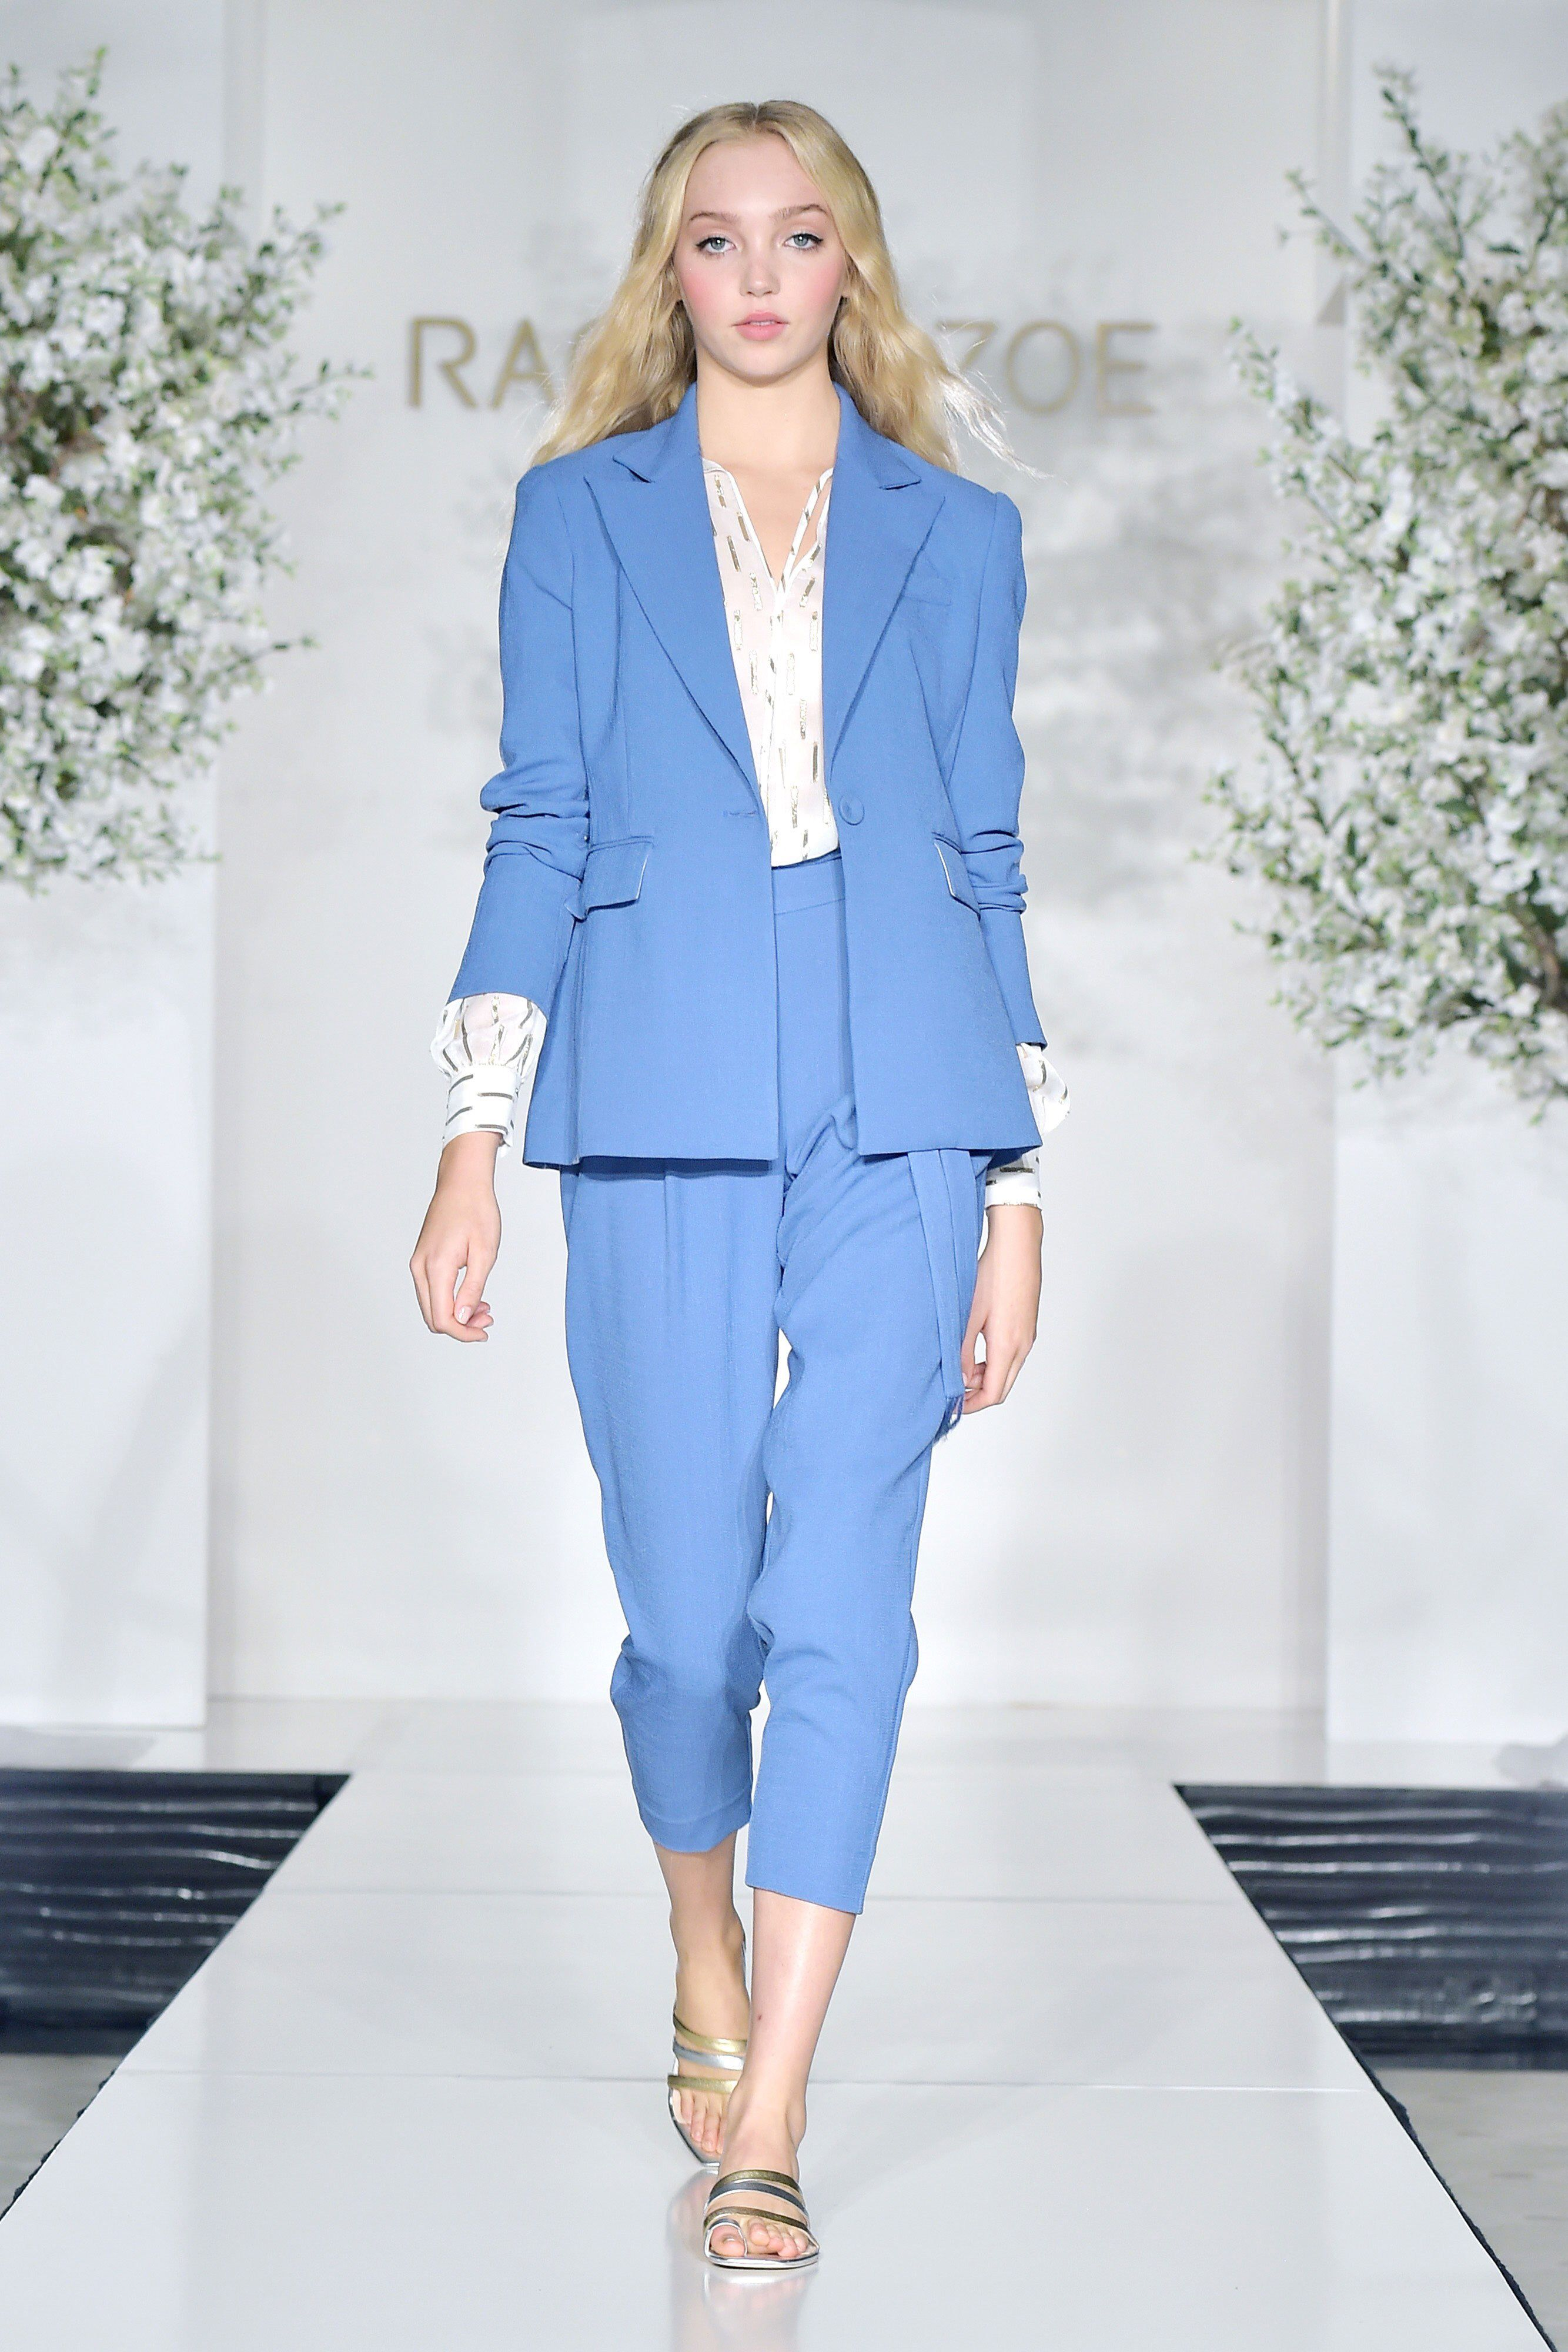 48a3e6d094cd Rachel Zoe Spring 2019 Ready-to-Wear Fashion Show Collection  See the  complete Rachel Zoe Spring 2019 Ready-to-Wear collection. Look 15